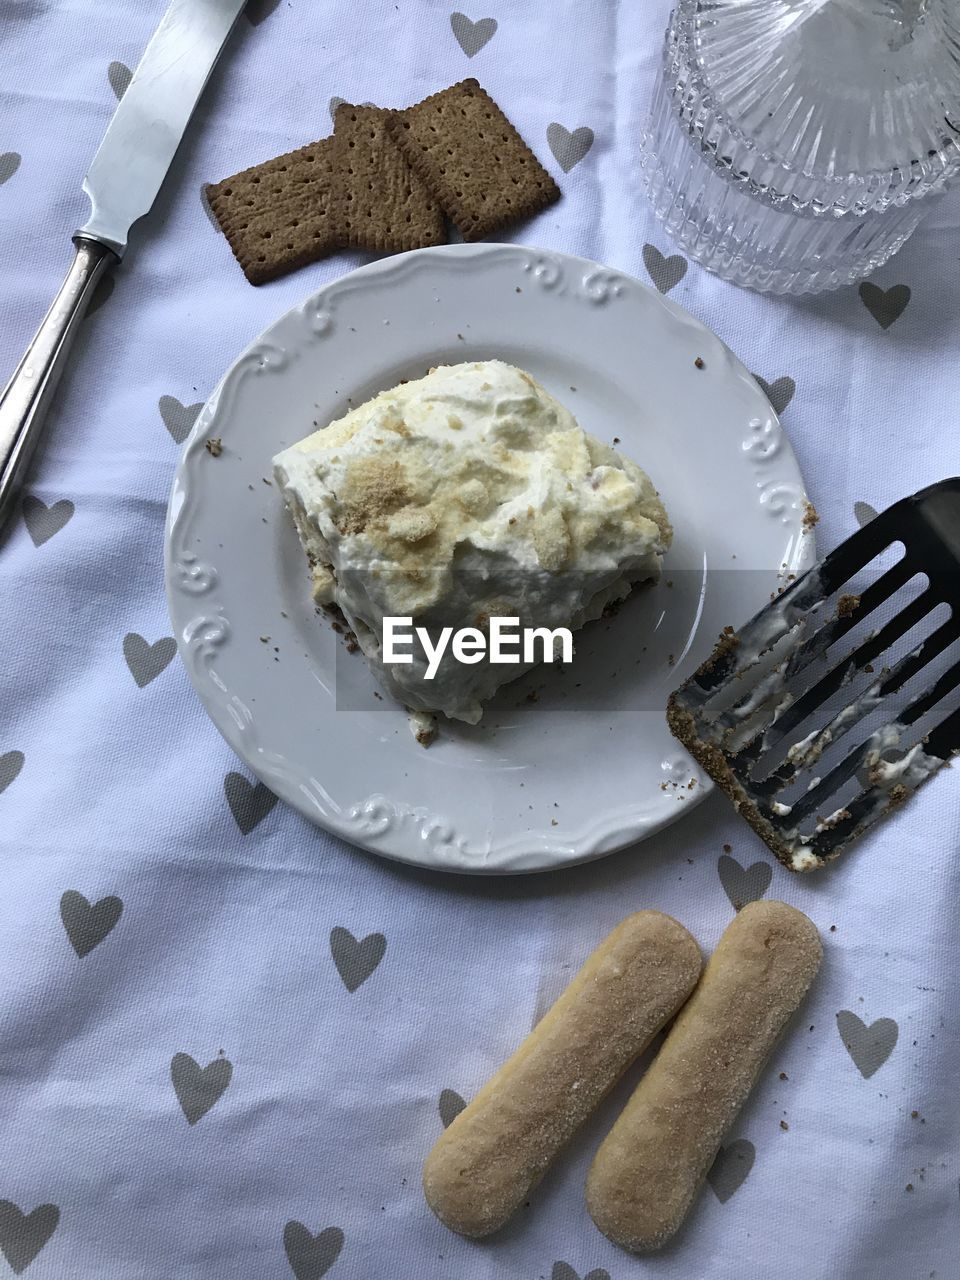 food, plate, eating utensil, food and drink, fork, kitchen utensil, sweet food, still life, high angle view, sweet, freshness, dessert, table, ready-to-eat, indoors, indulgence, no people, knife, temptation, unhealthy eating, table knife, breakfast